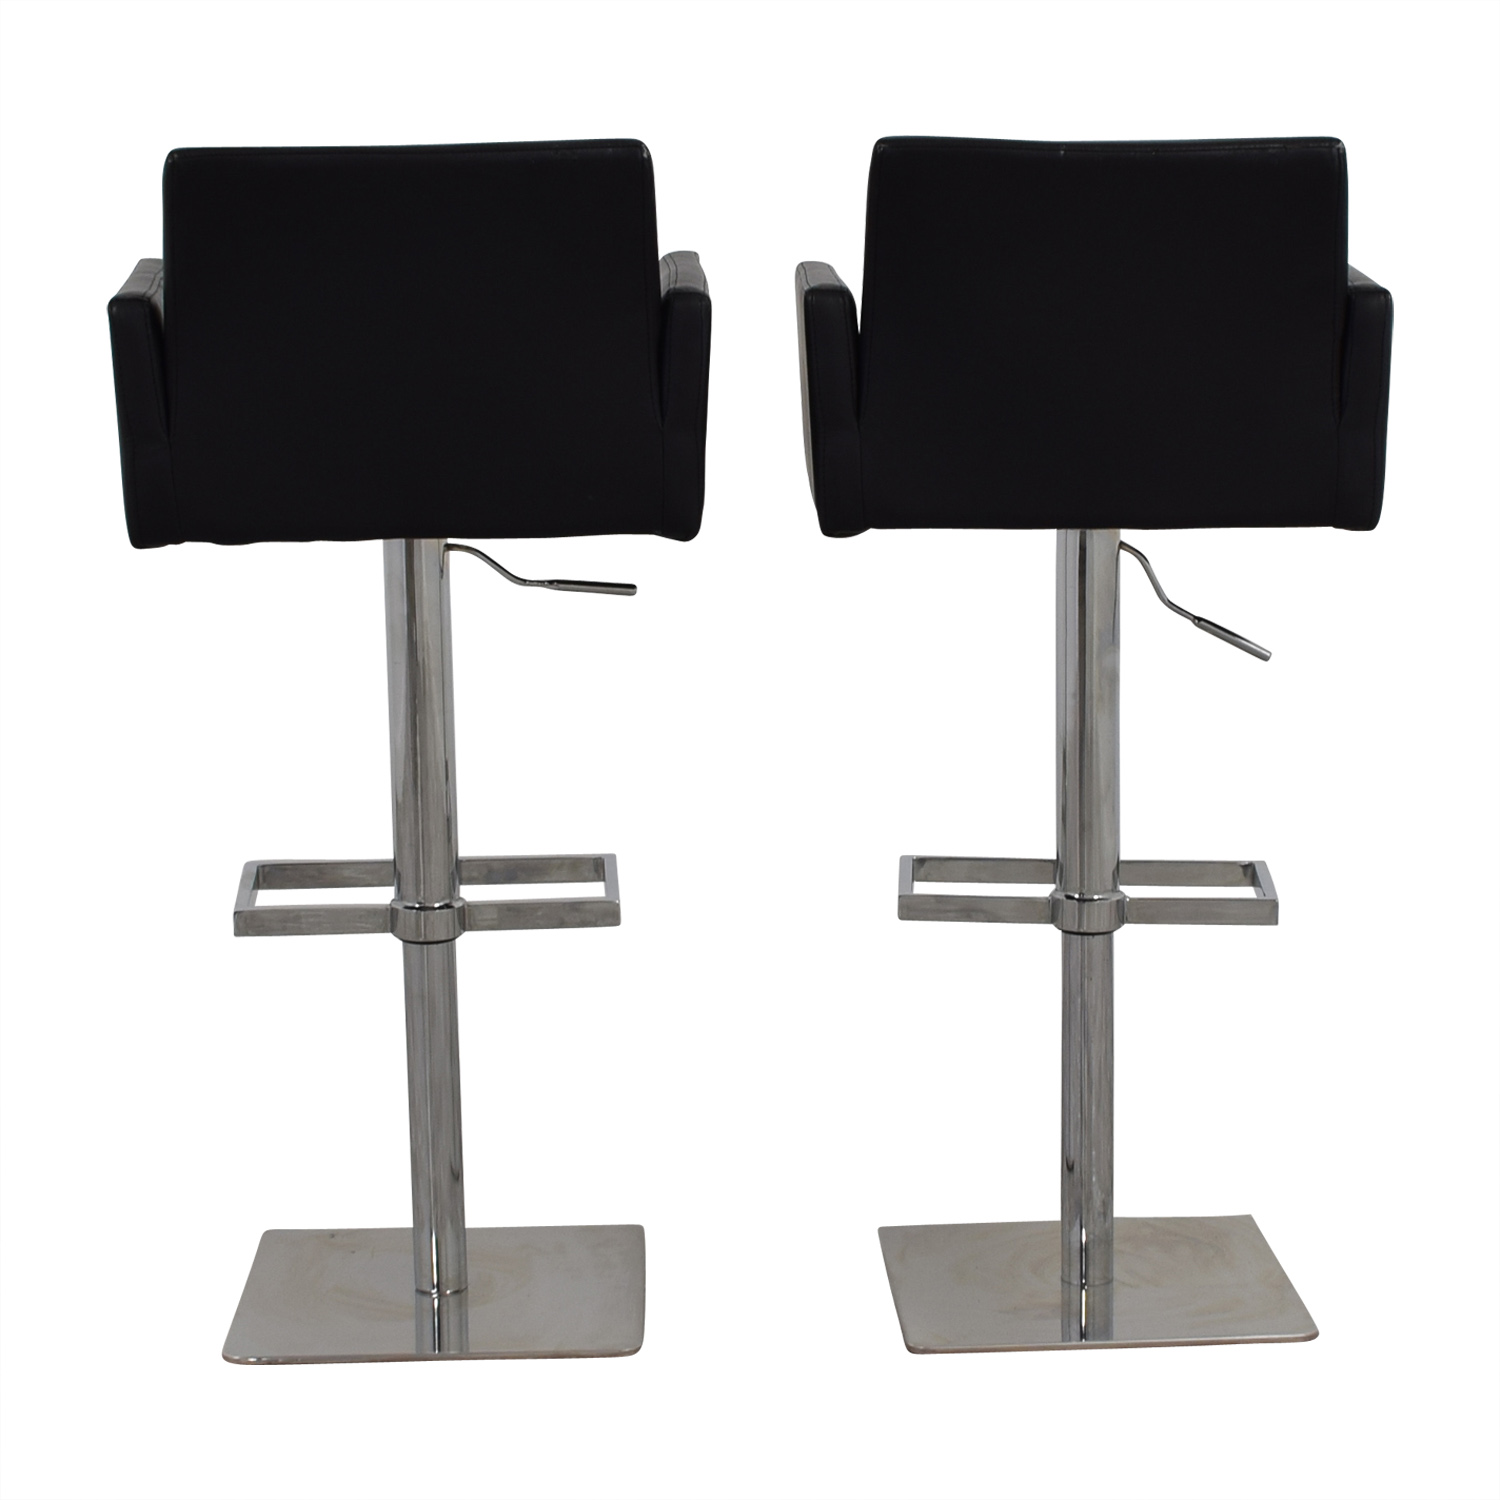 Modani Modani High Bar Chairs Stools